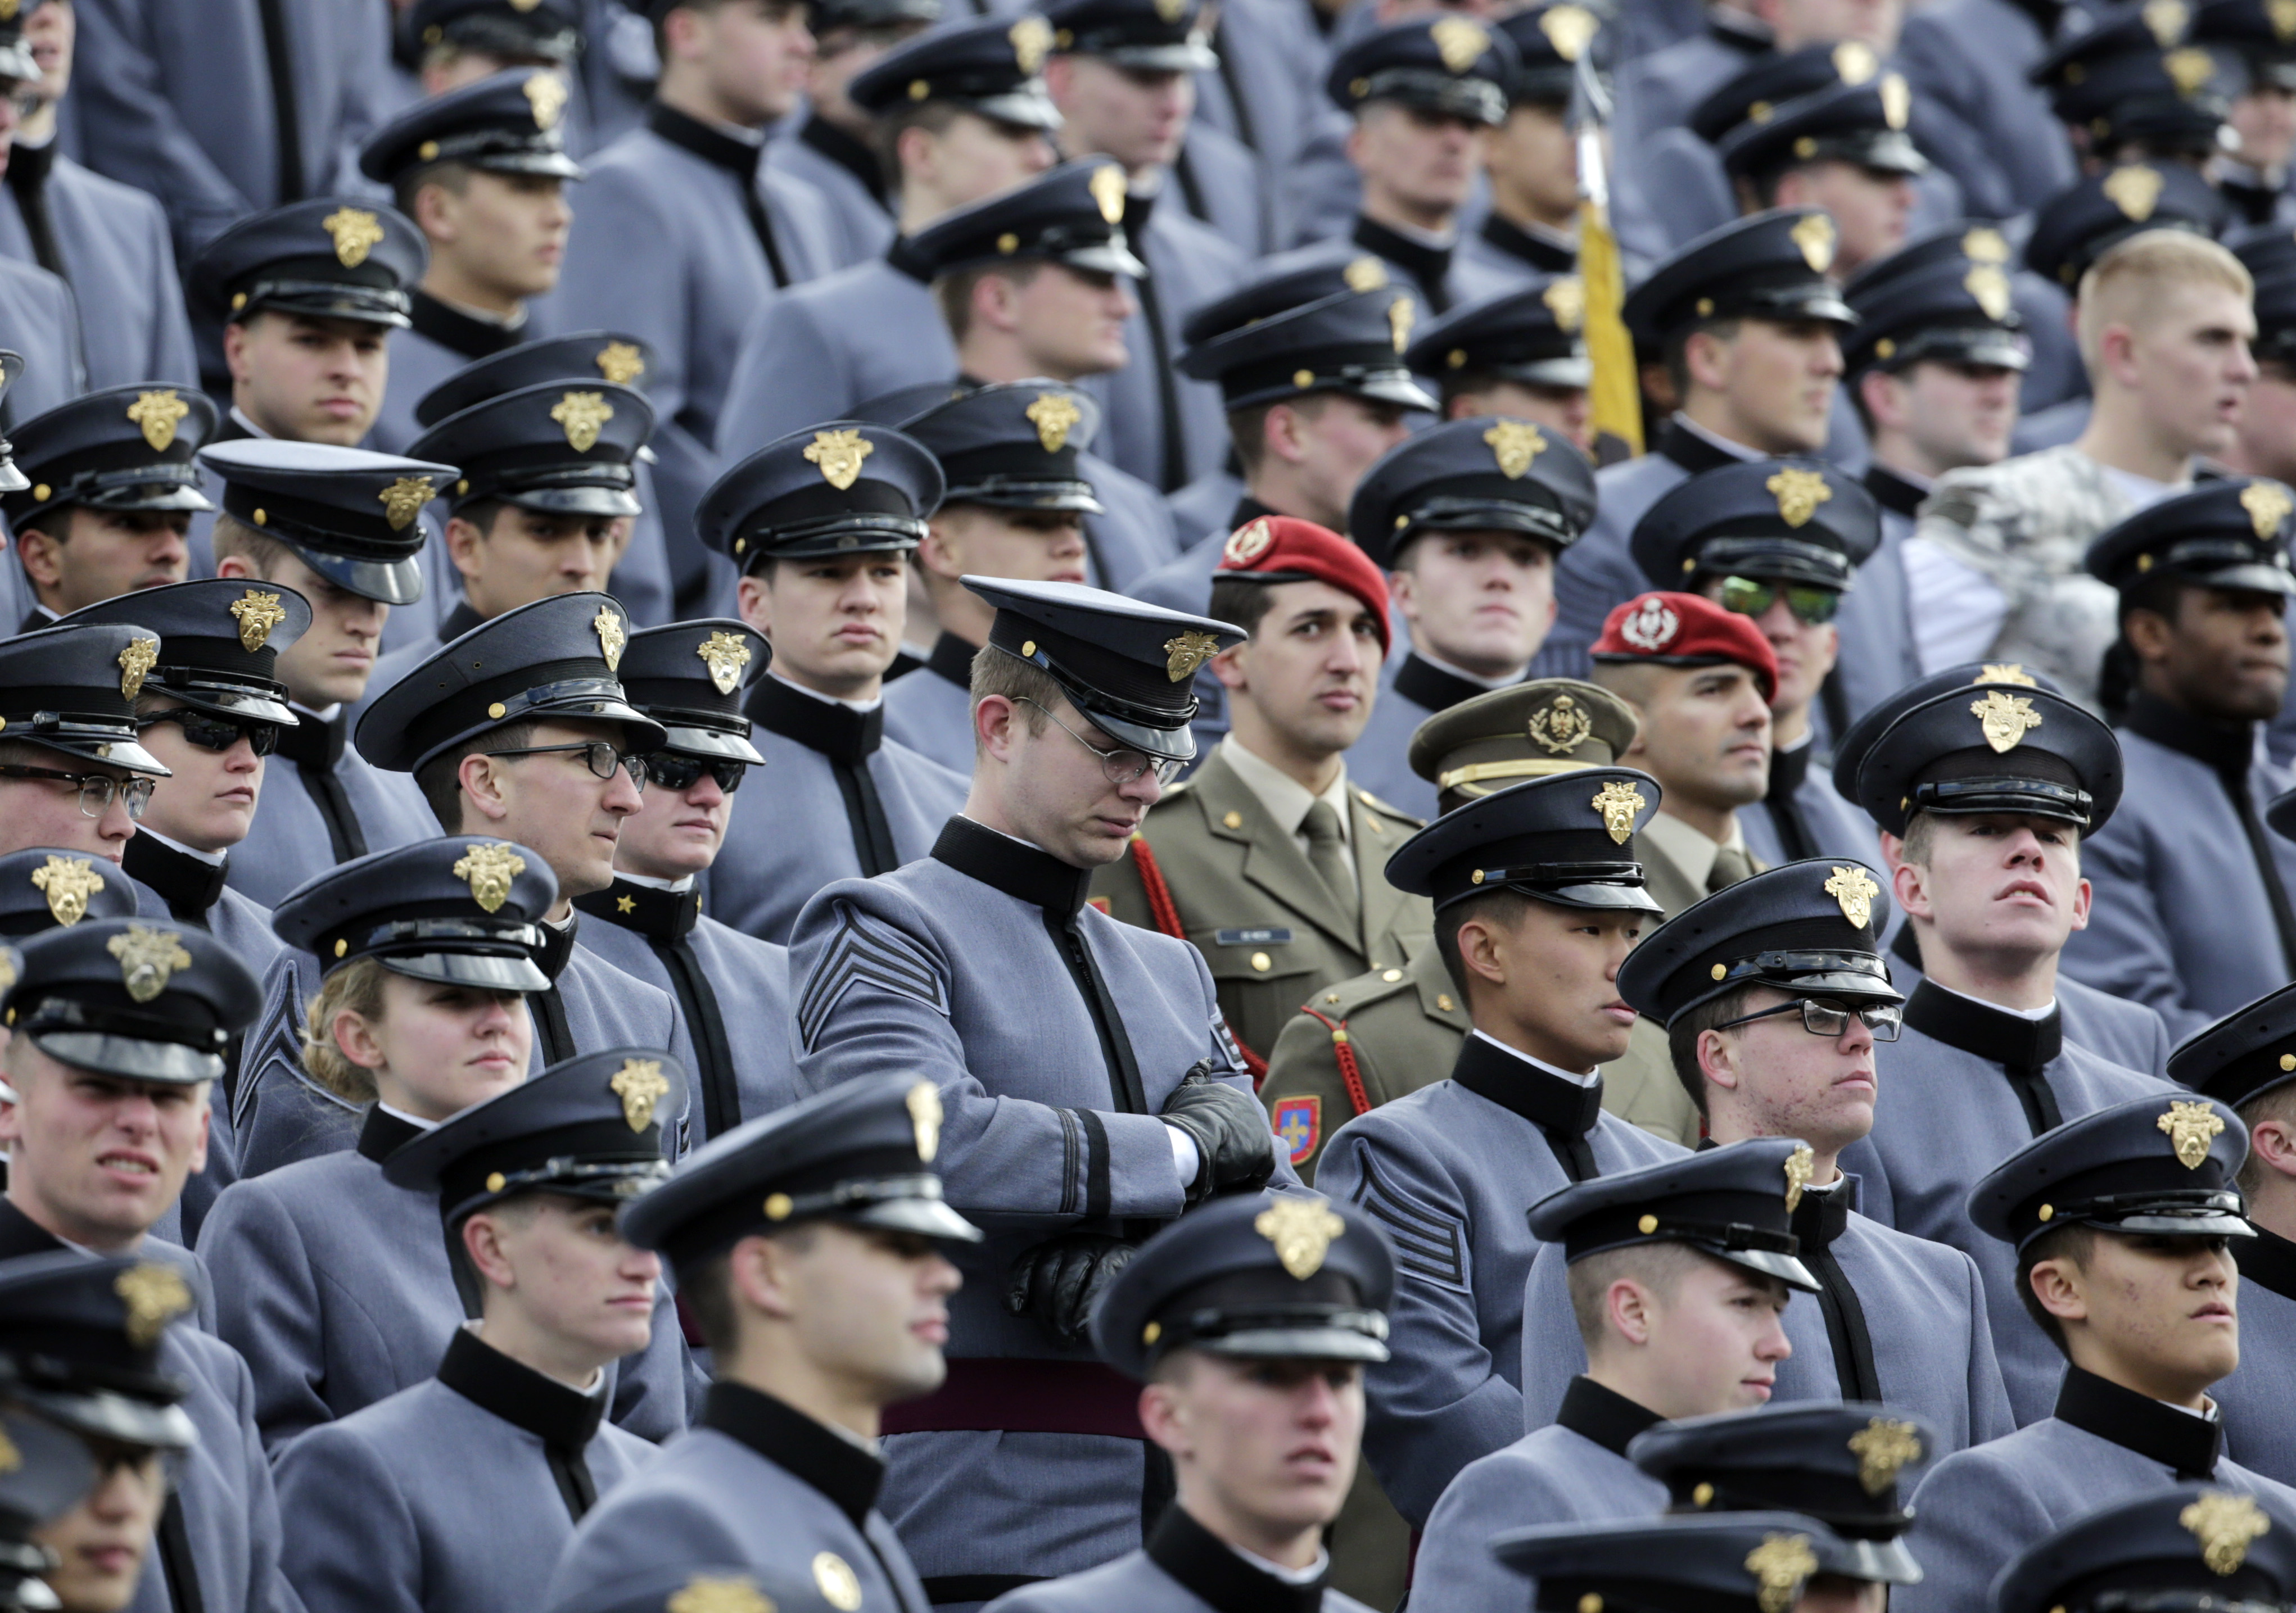 Cadets listen to a public address announcement remembering victims of Friday's attacks in Paris during a timeout in the first half of an NCAA college football game against Tulane on Saturday, Nov. 14, 2015, in West Point, N.Y. (AP Photo/Mike Groll)